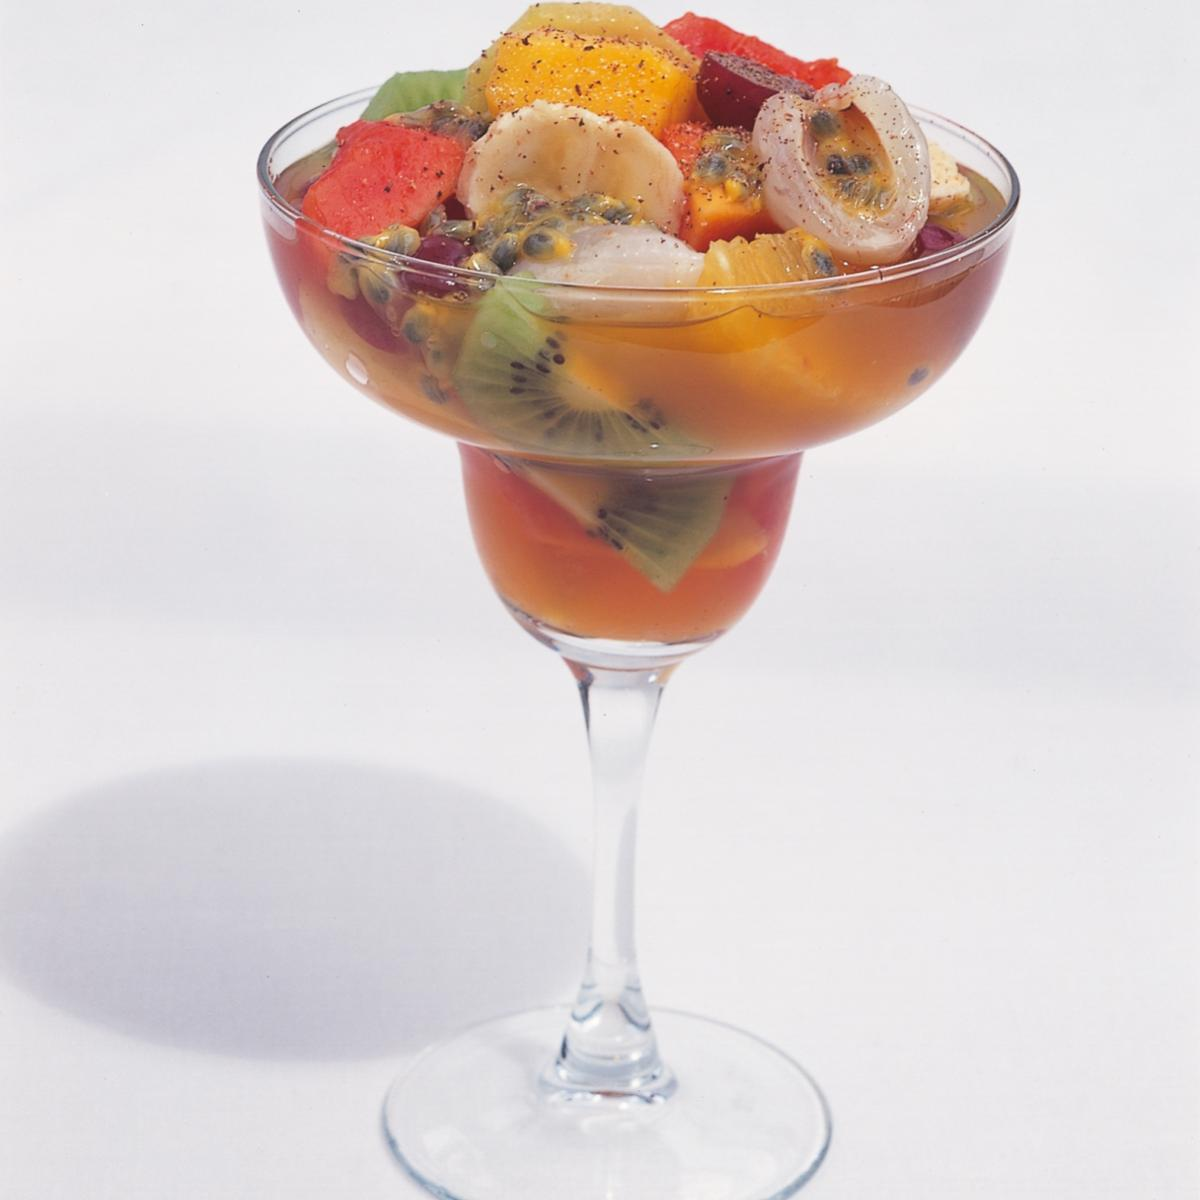 Htc tropical fruit salad in planters punch